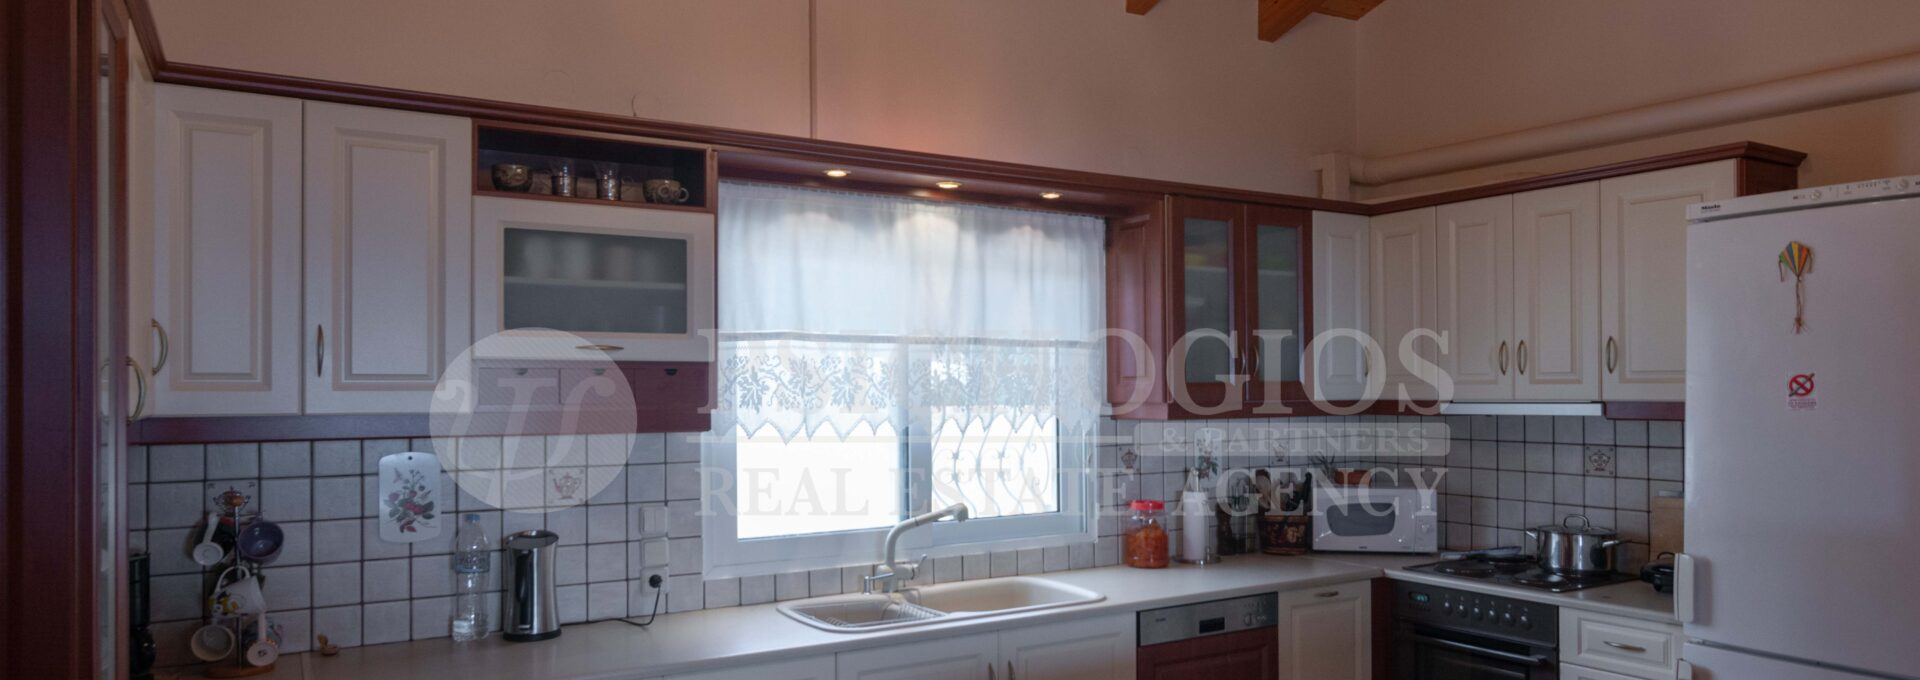 for_sale_house_107_square_meters_3_bedrooms_sea_view_ermioni_greece 1 1 (15)